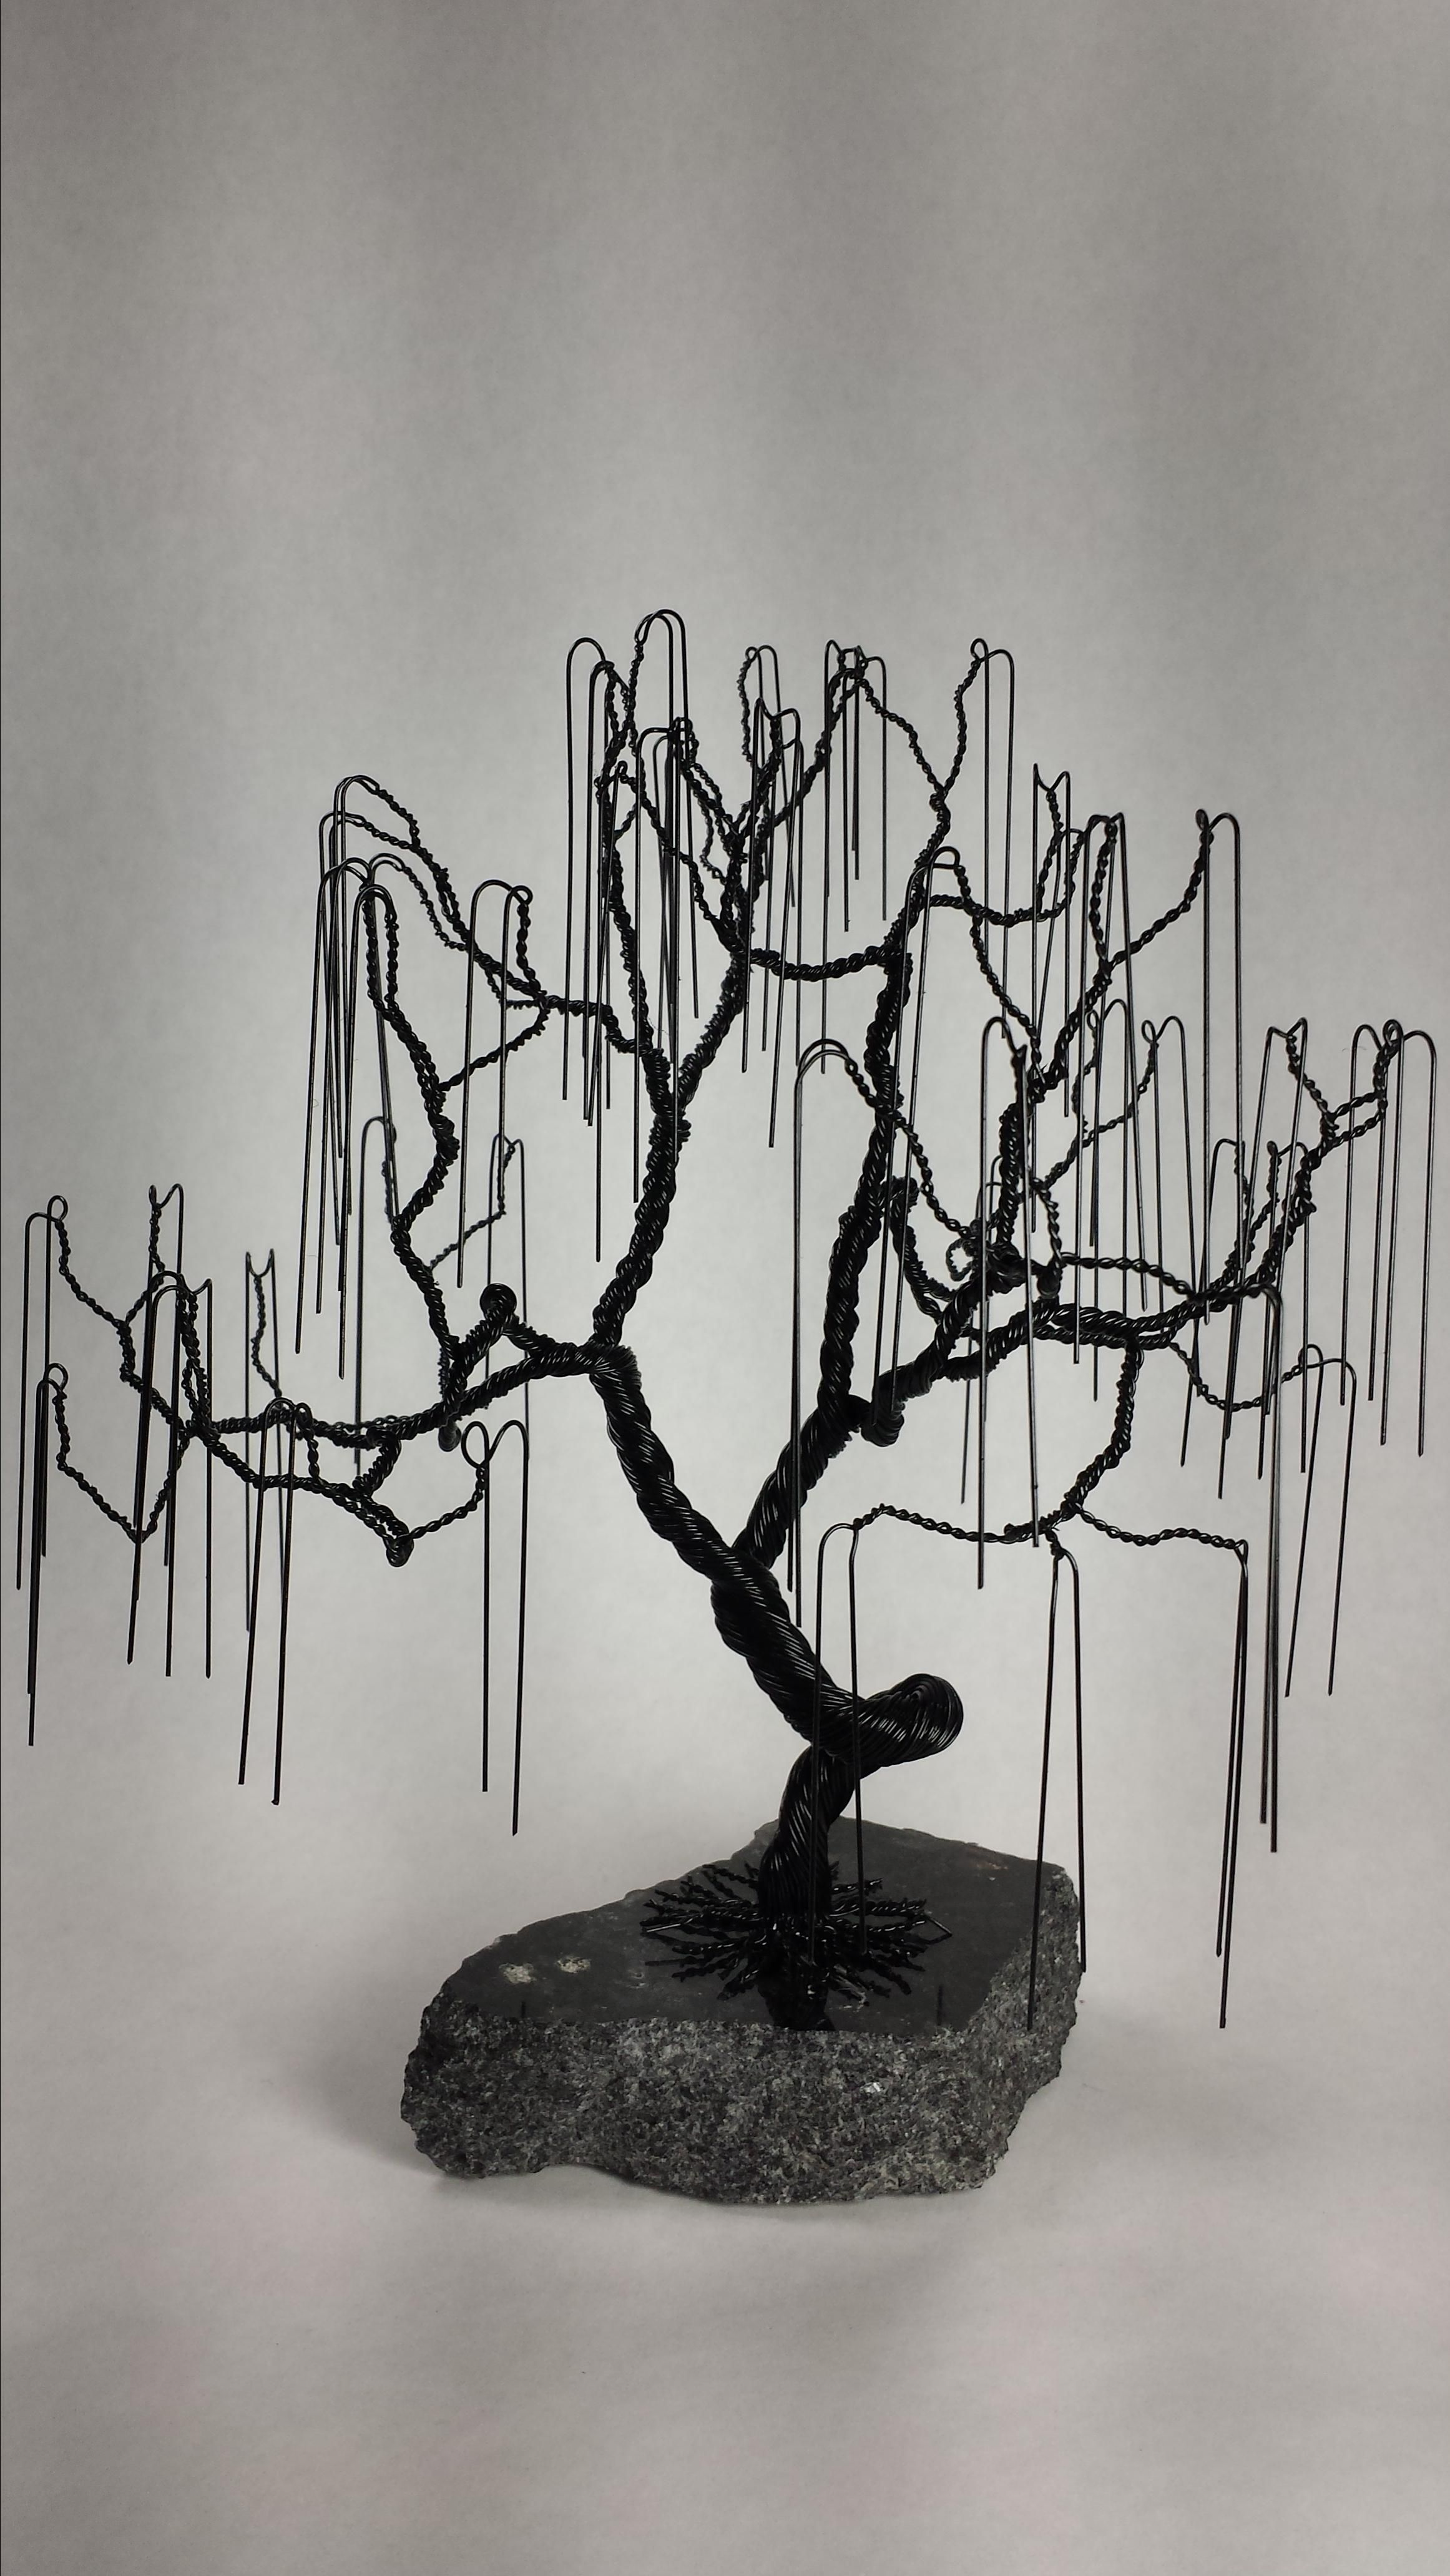 Buy Custom Small Weeping Willow Wire Bonsai Tree Sculpture Made To Order From Golomb Art Custommade Com